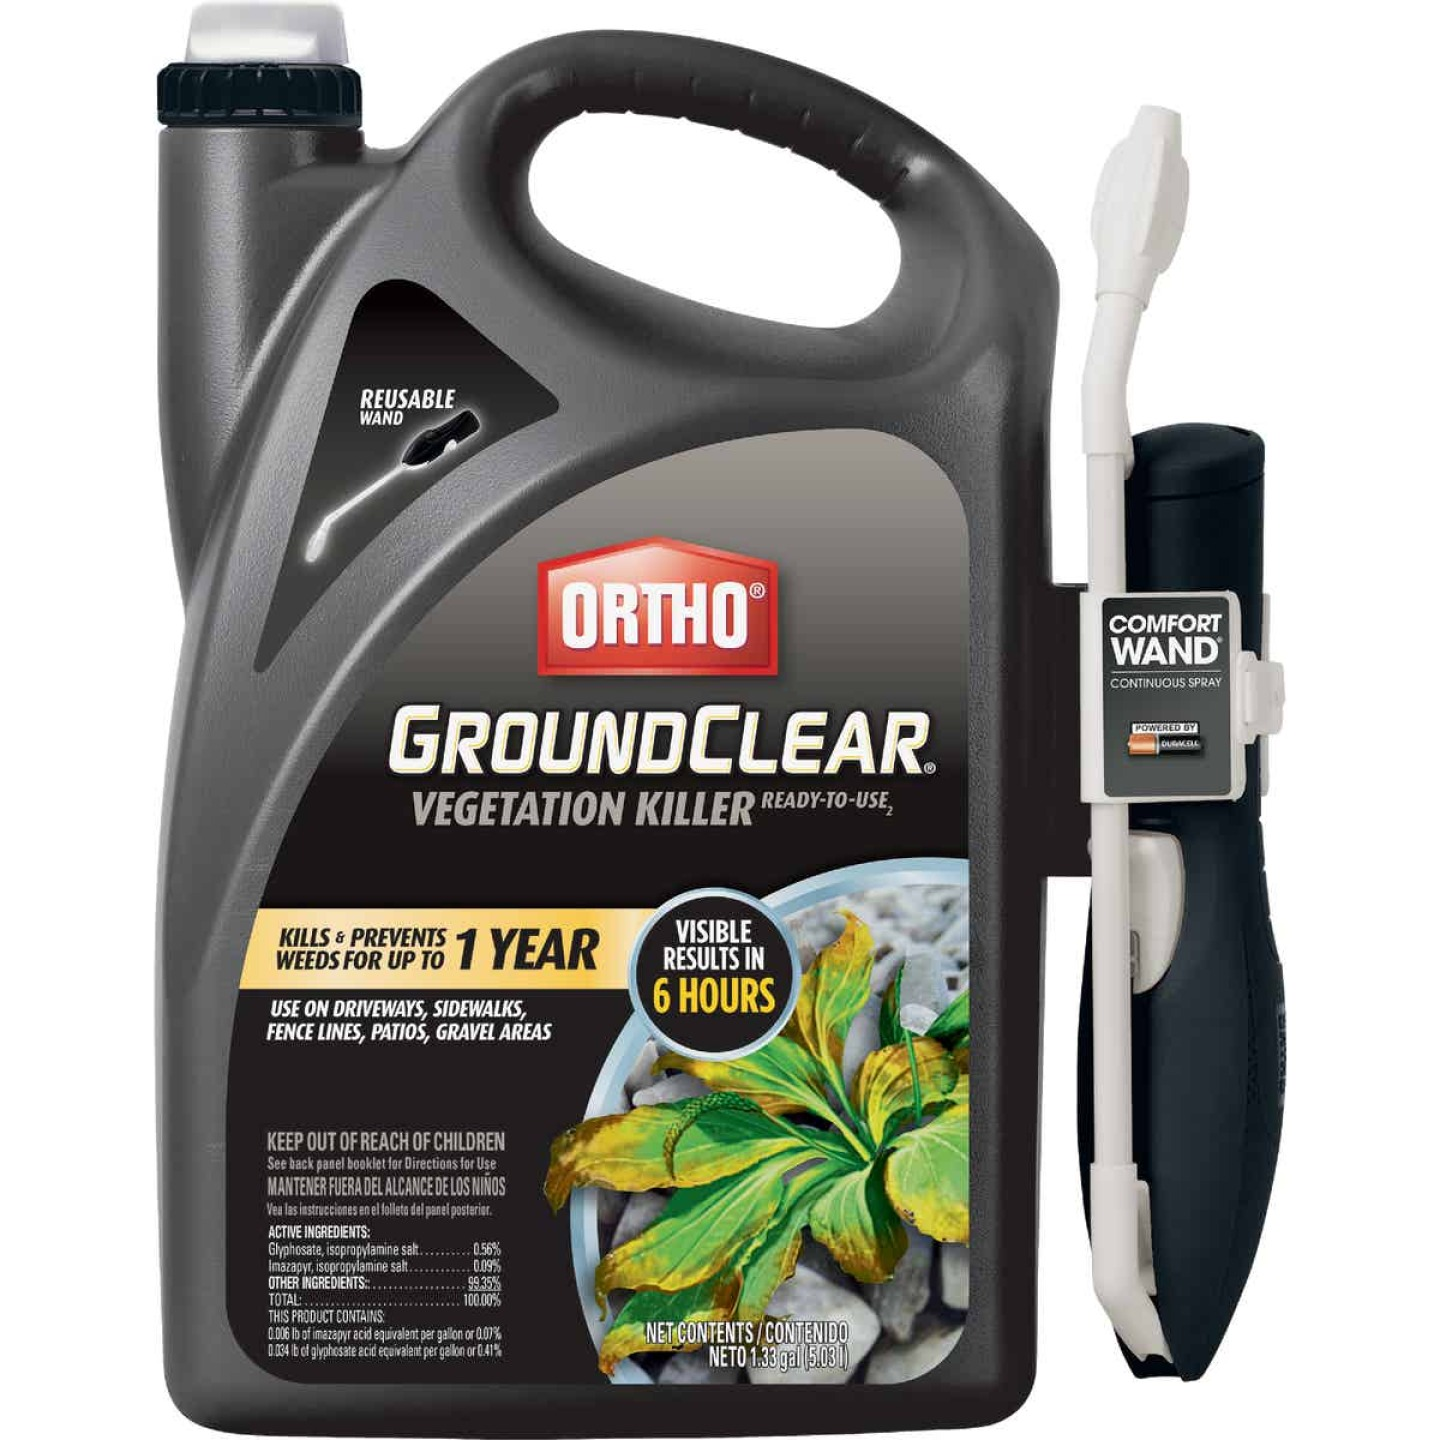 Ortho GroundClear 1.33 Gal. Ready To Use Vegetation Killer with Comfort Wand Image 1